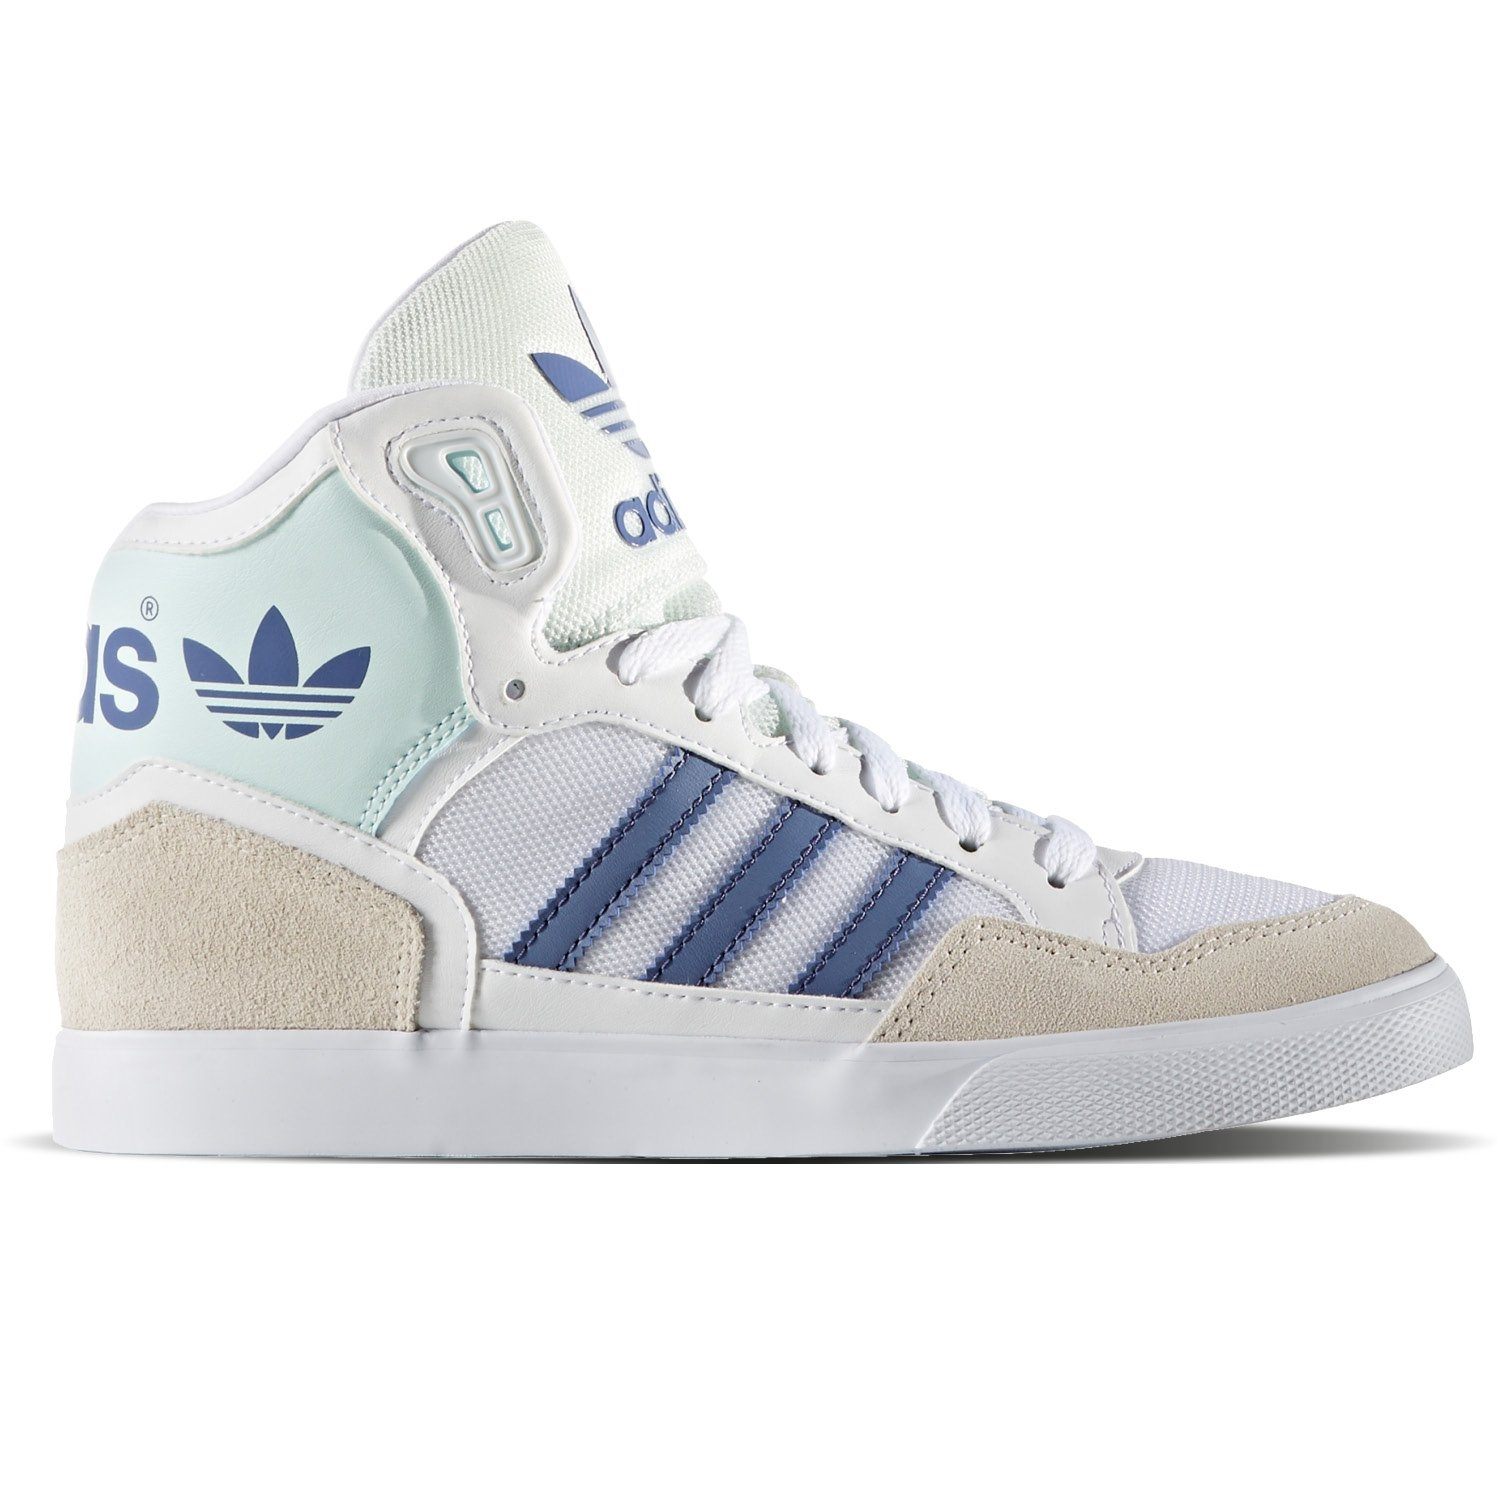 adidas Extaball White/Ice Mint AQ4799